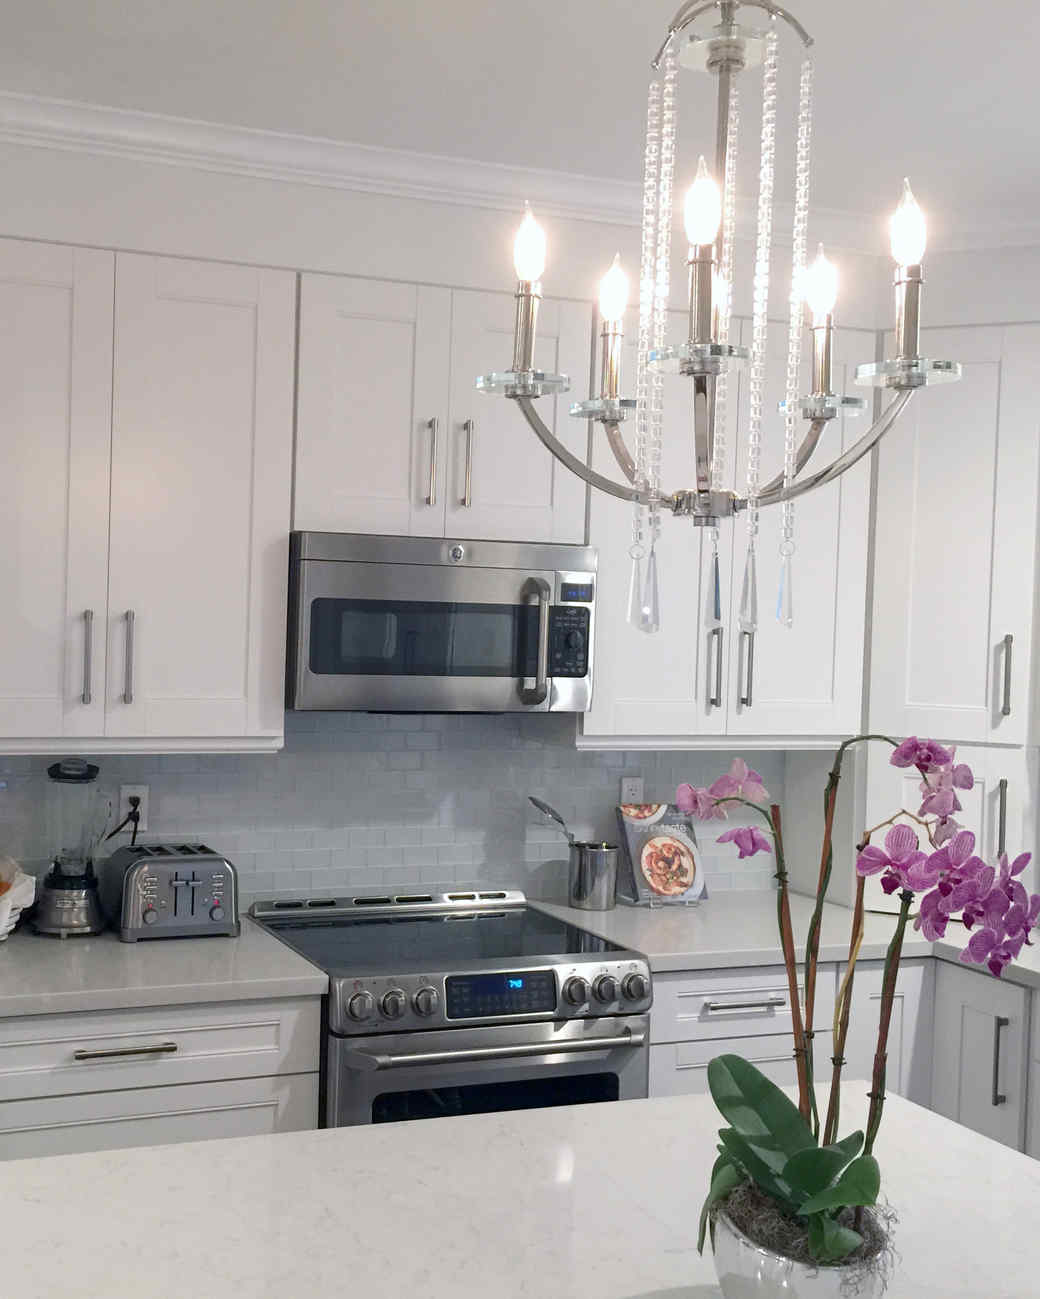 Kitchen Lighting 6 Bright Kitchen Lighting Ideas See How New Fixtures Totally